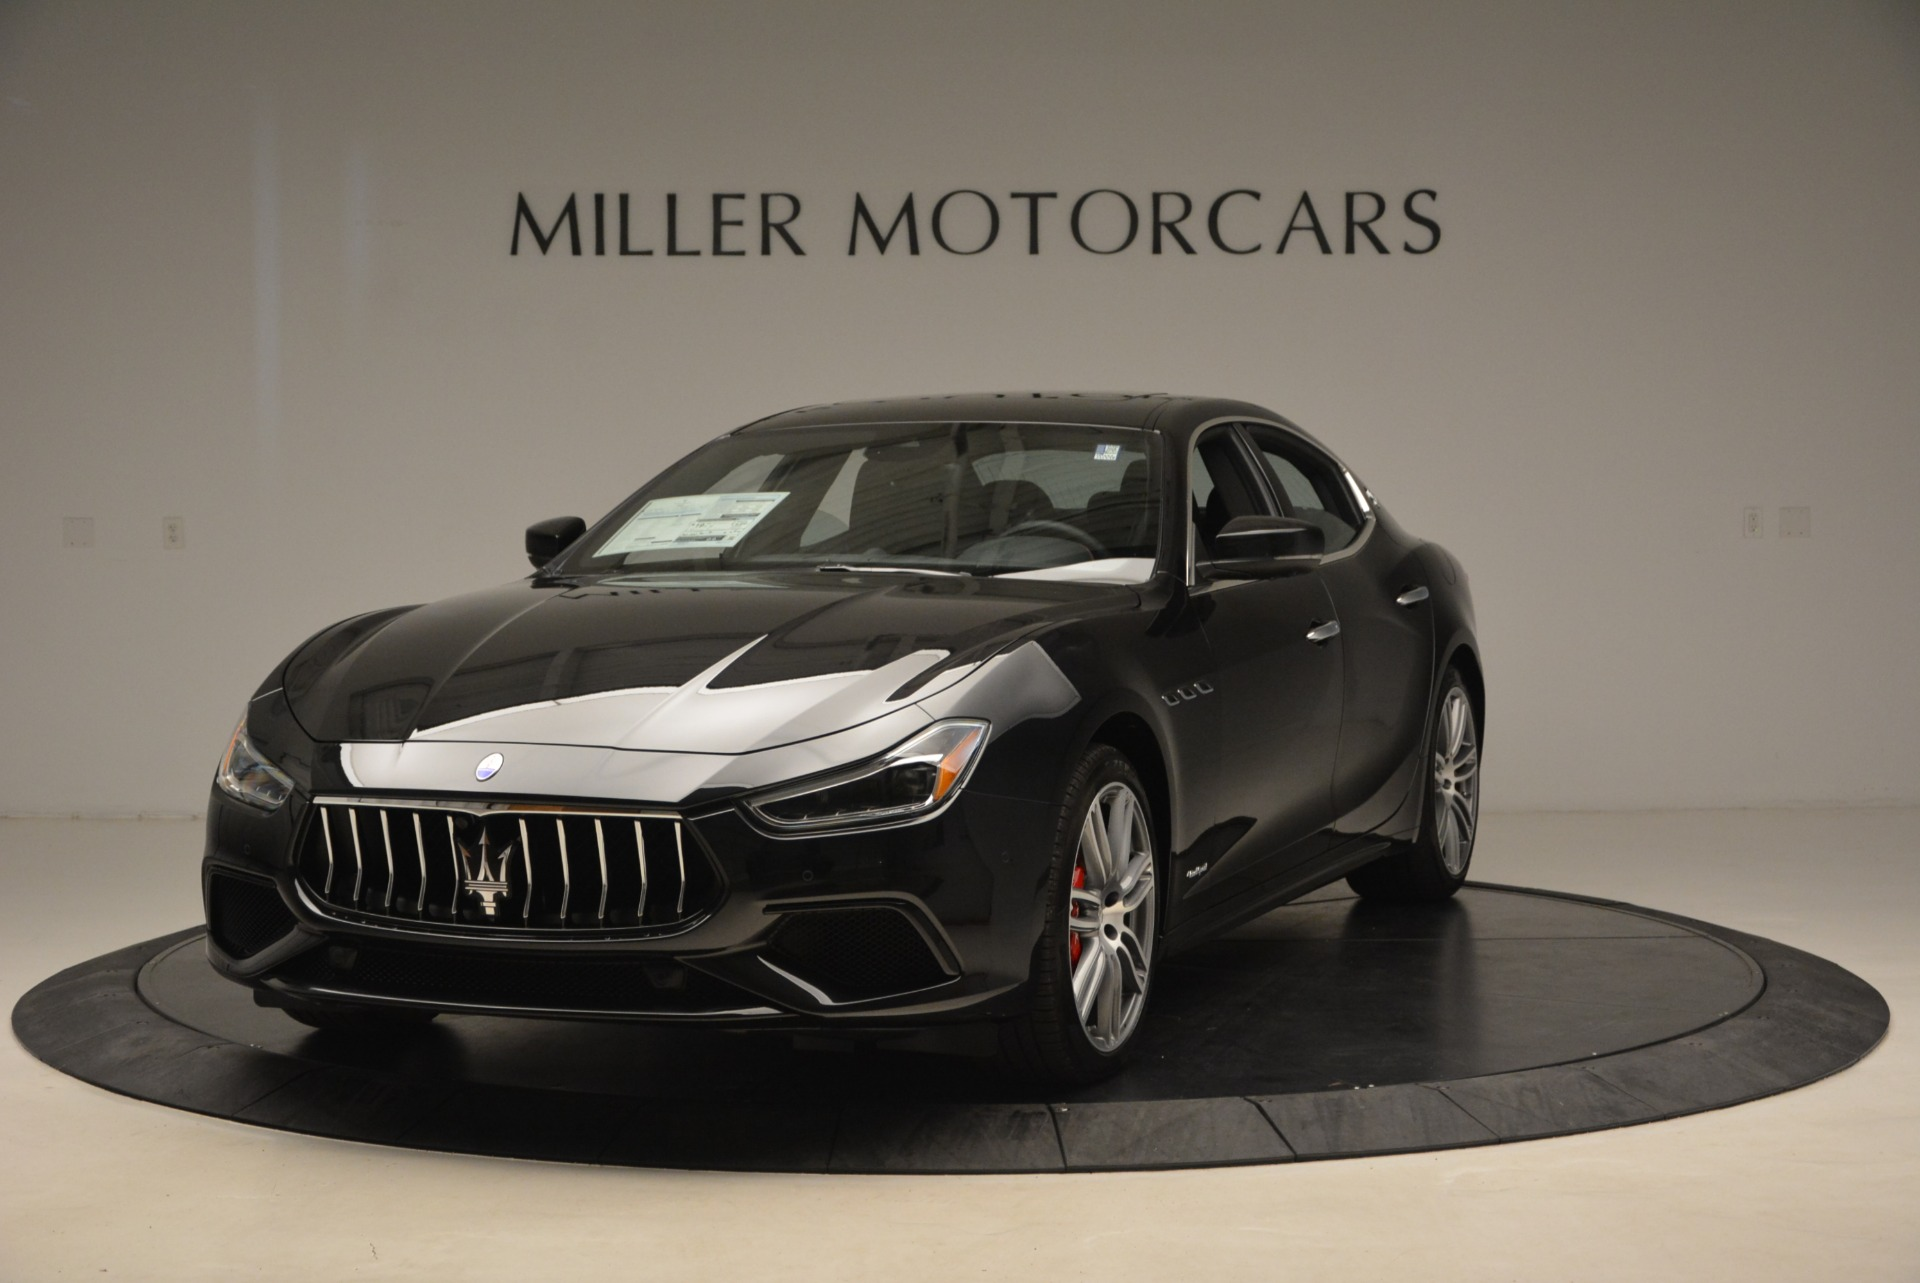 Used 2019 Maserati Ghibli S Q4 GranSport for sale $64,900 at Aston Martin of Greenwich in Greenwich CT 06830 1